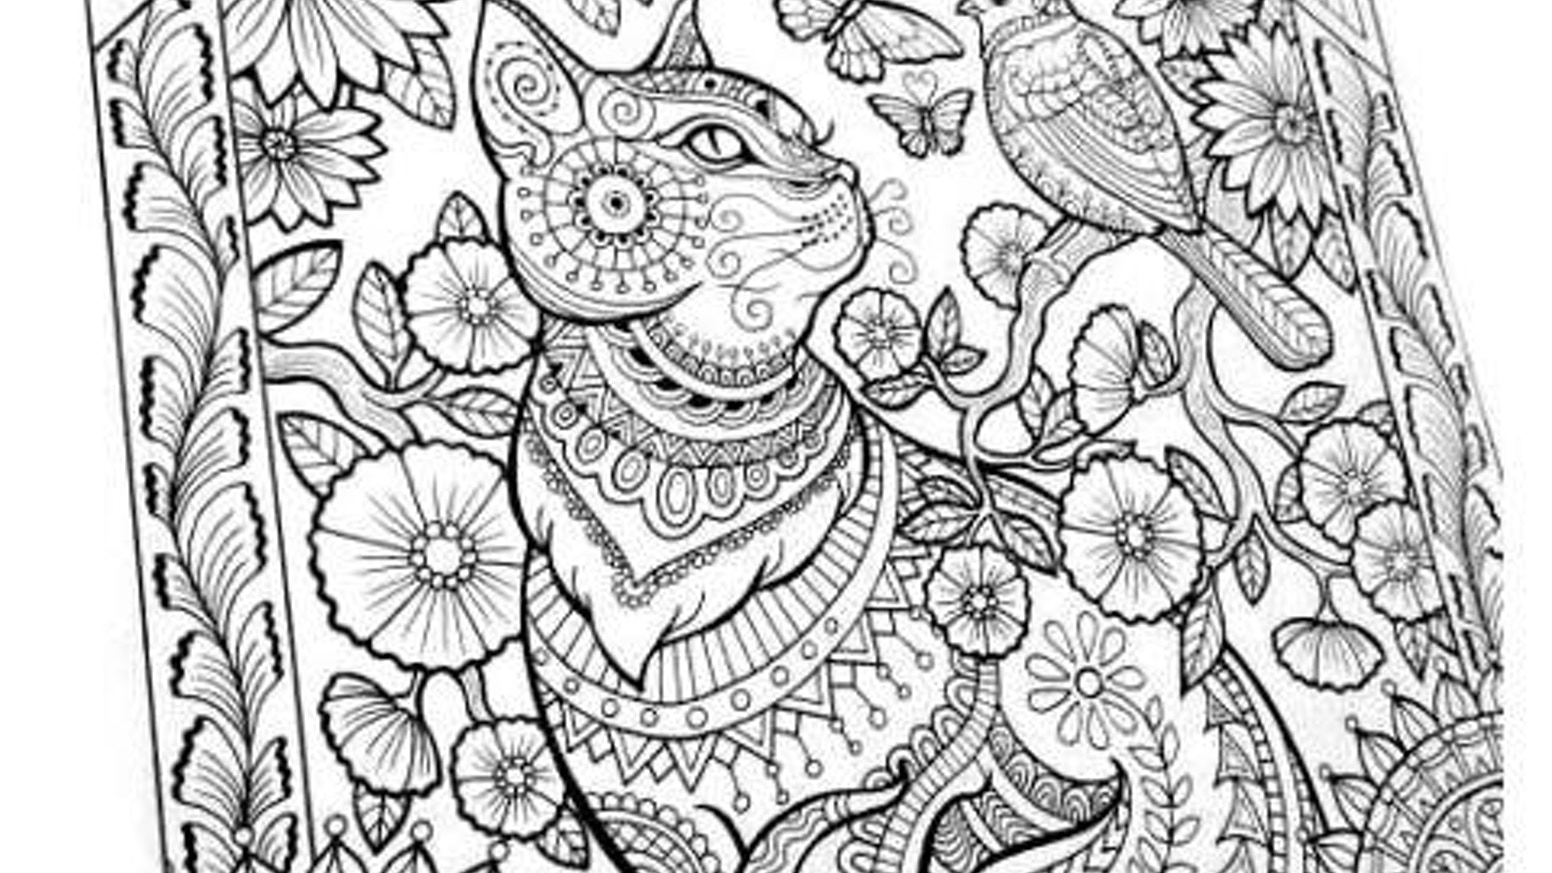 spiral pictures to color celtic spiral tile pattern coloring page free printable spiral to color pictures